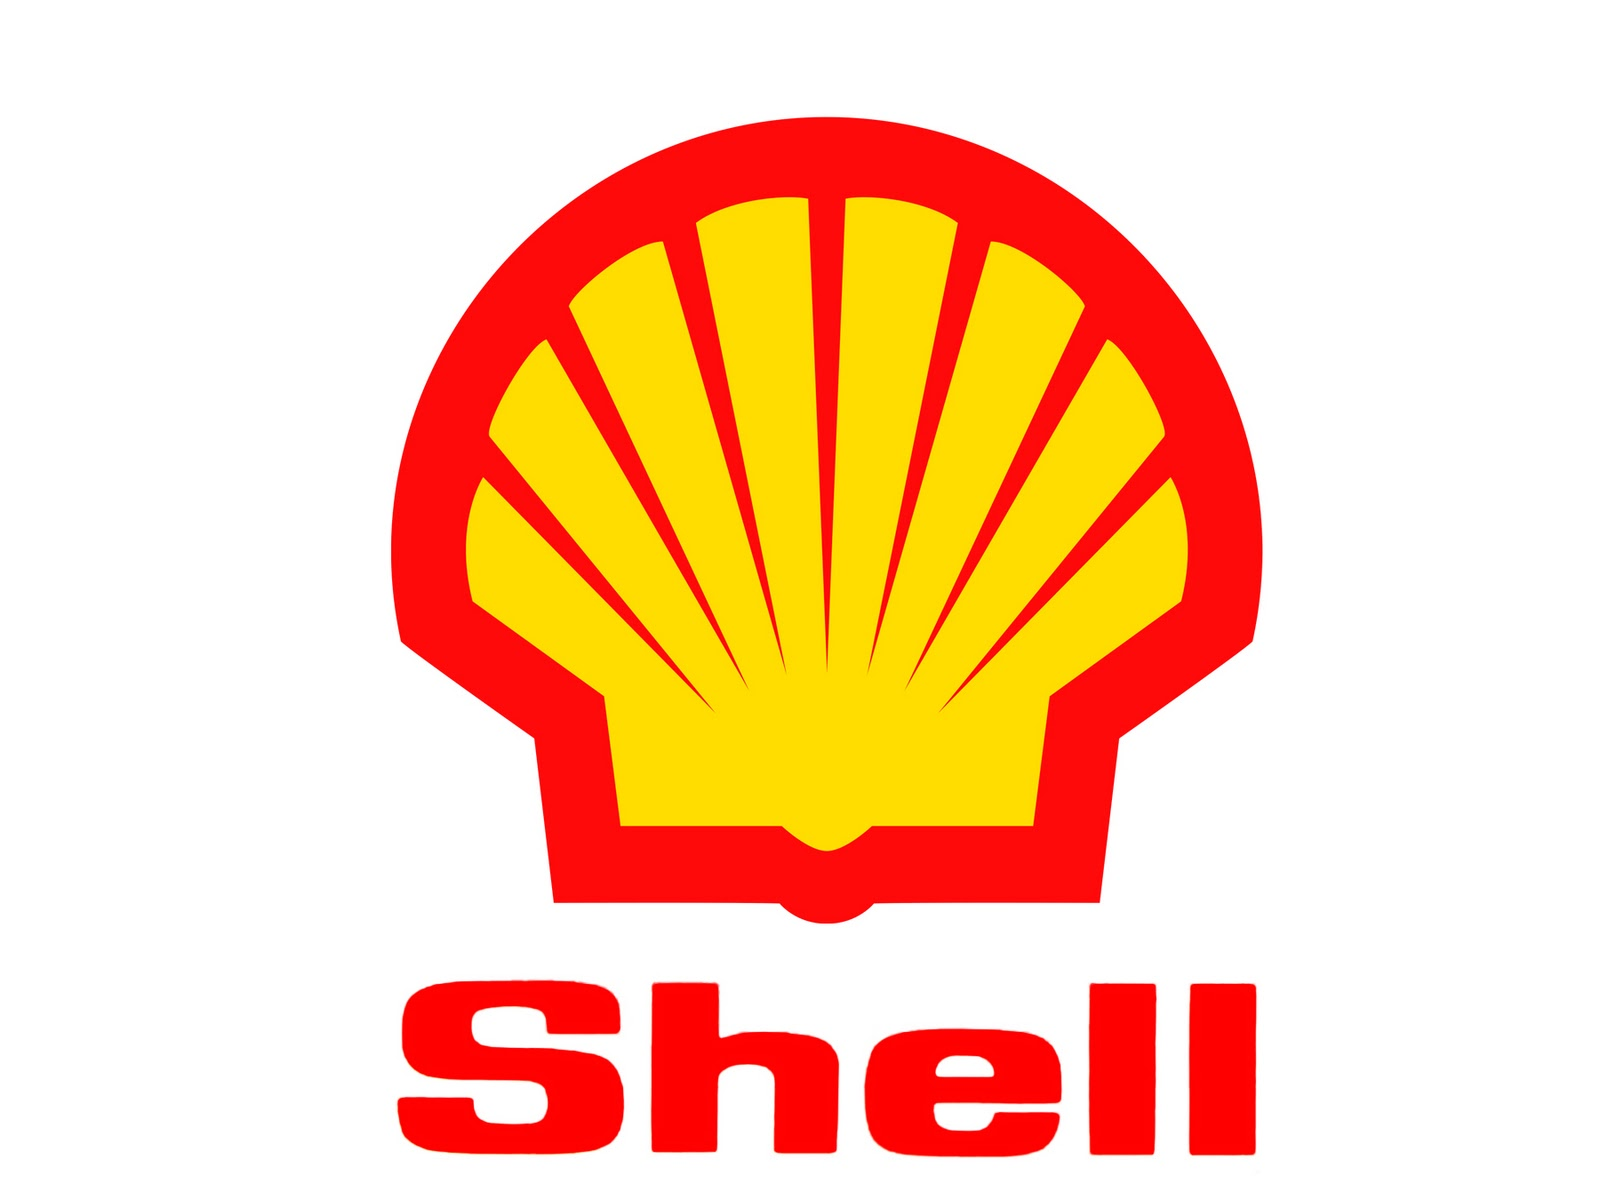 Beleggen met 200 euro in Royal Dutch shell 1